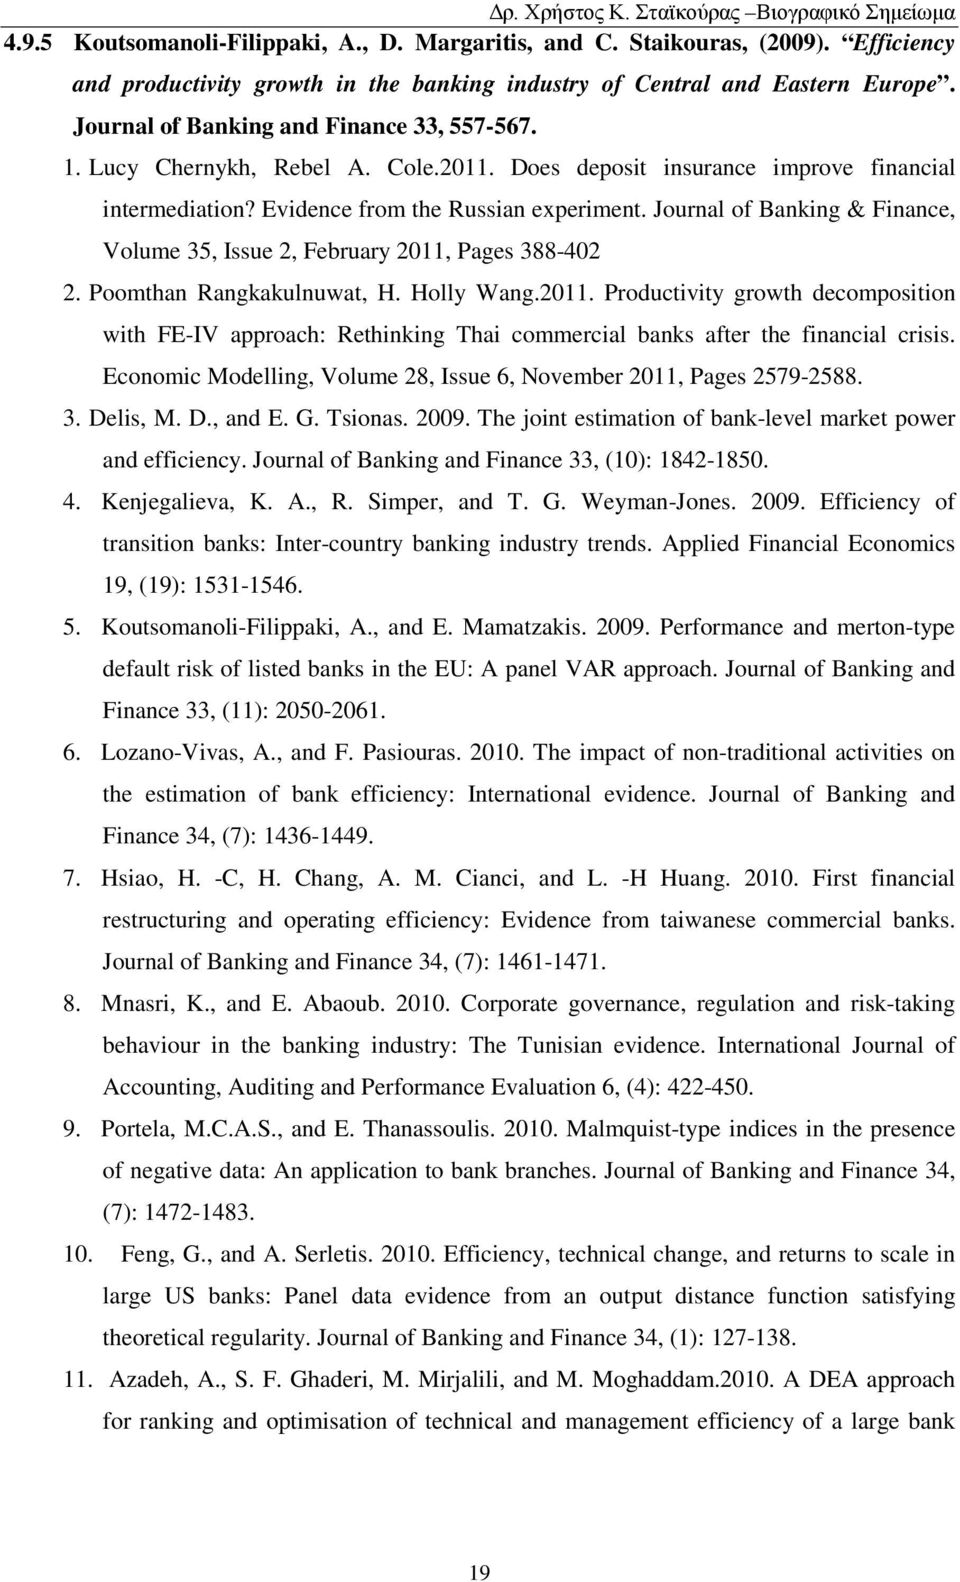 Journal of Banking & Finance, Volume 35, Issue 2, February 2011, Pages 388-402 2. Poomthan Rangkakulnuwat, H. Holly Wang.2011. Productivity growth decomposition with FE-IV approach: Rethinking Thai commercial banks after the financial crisis.